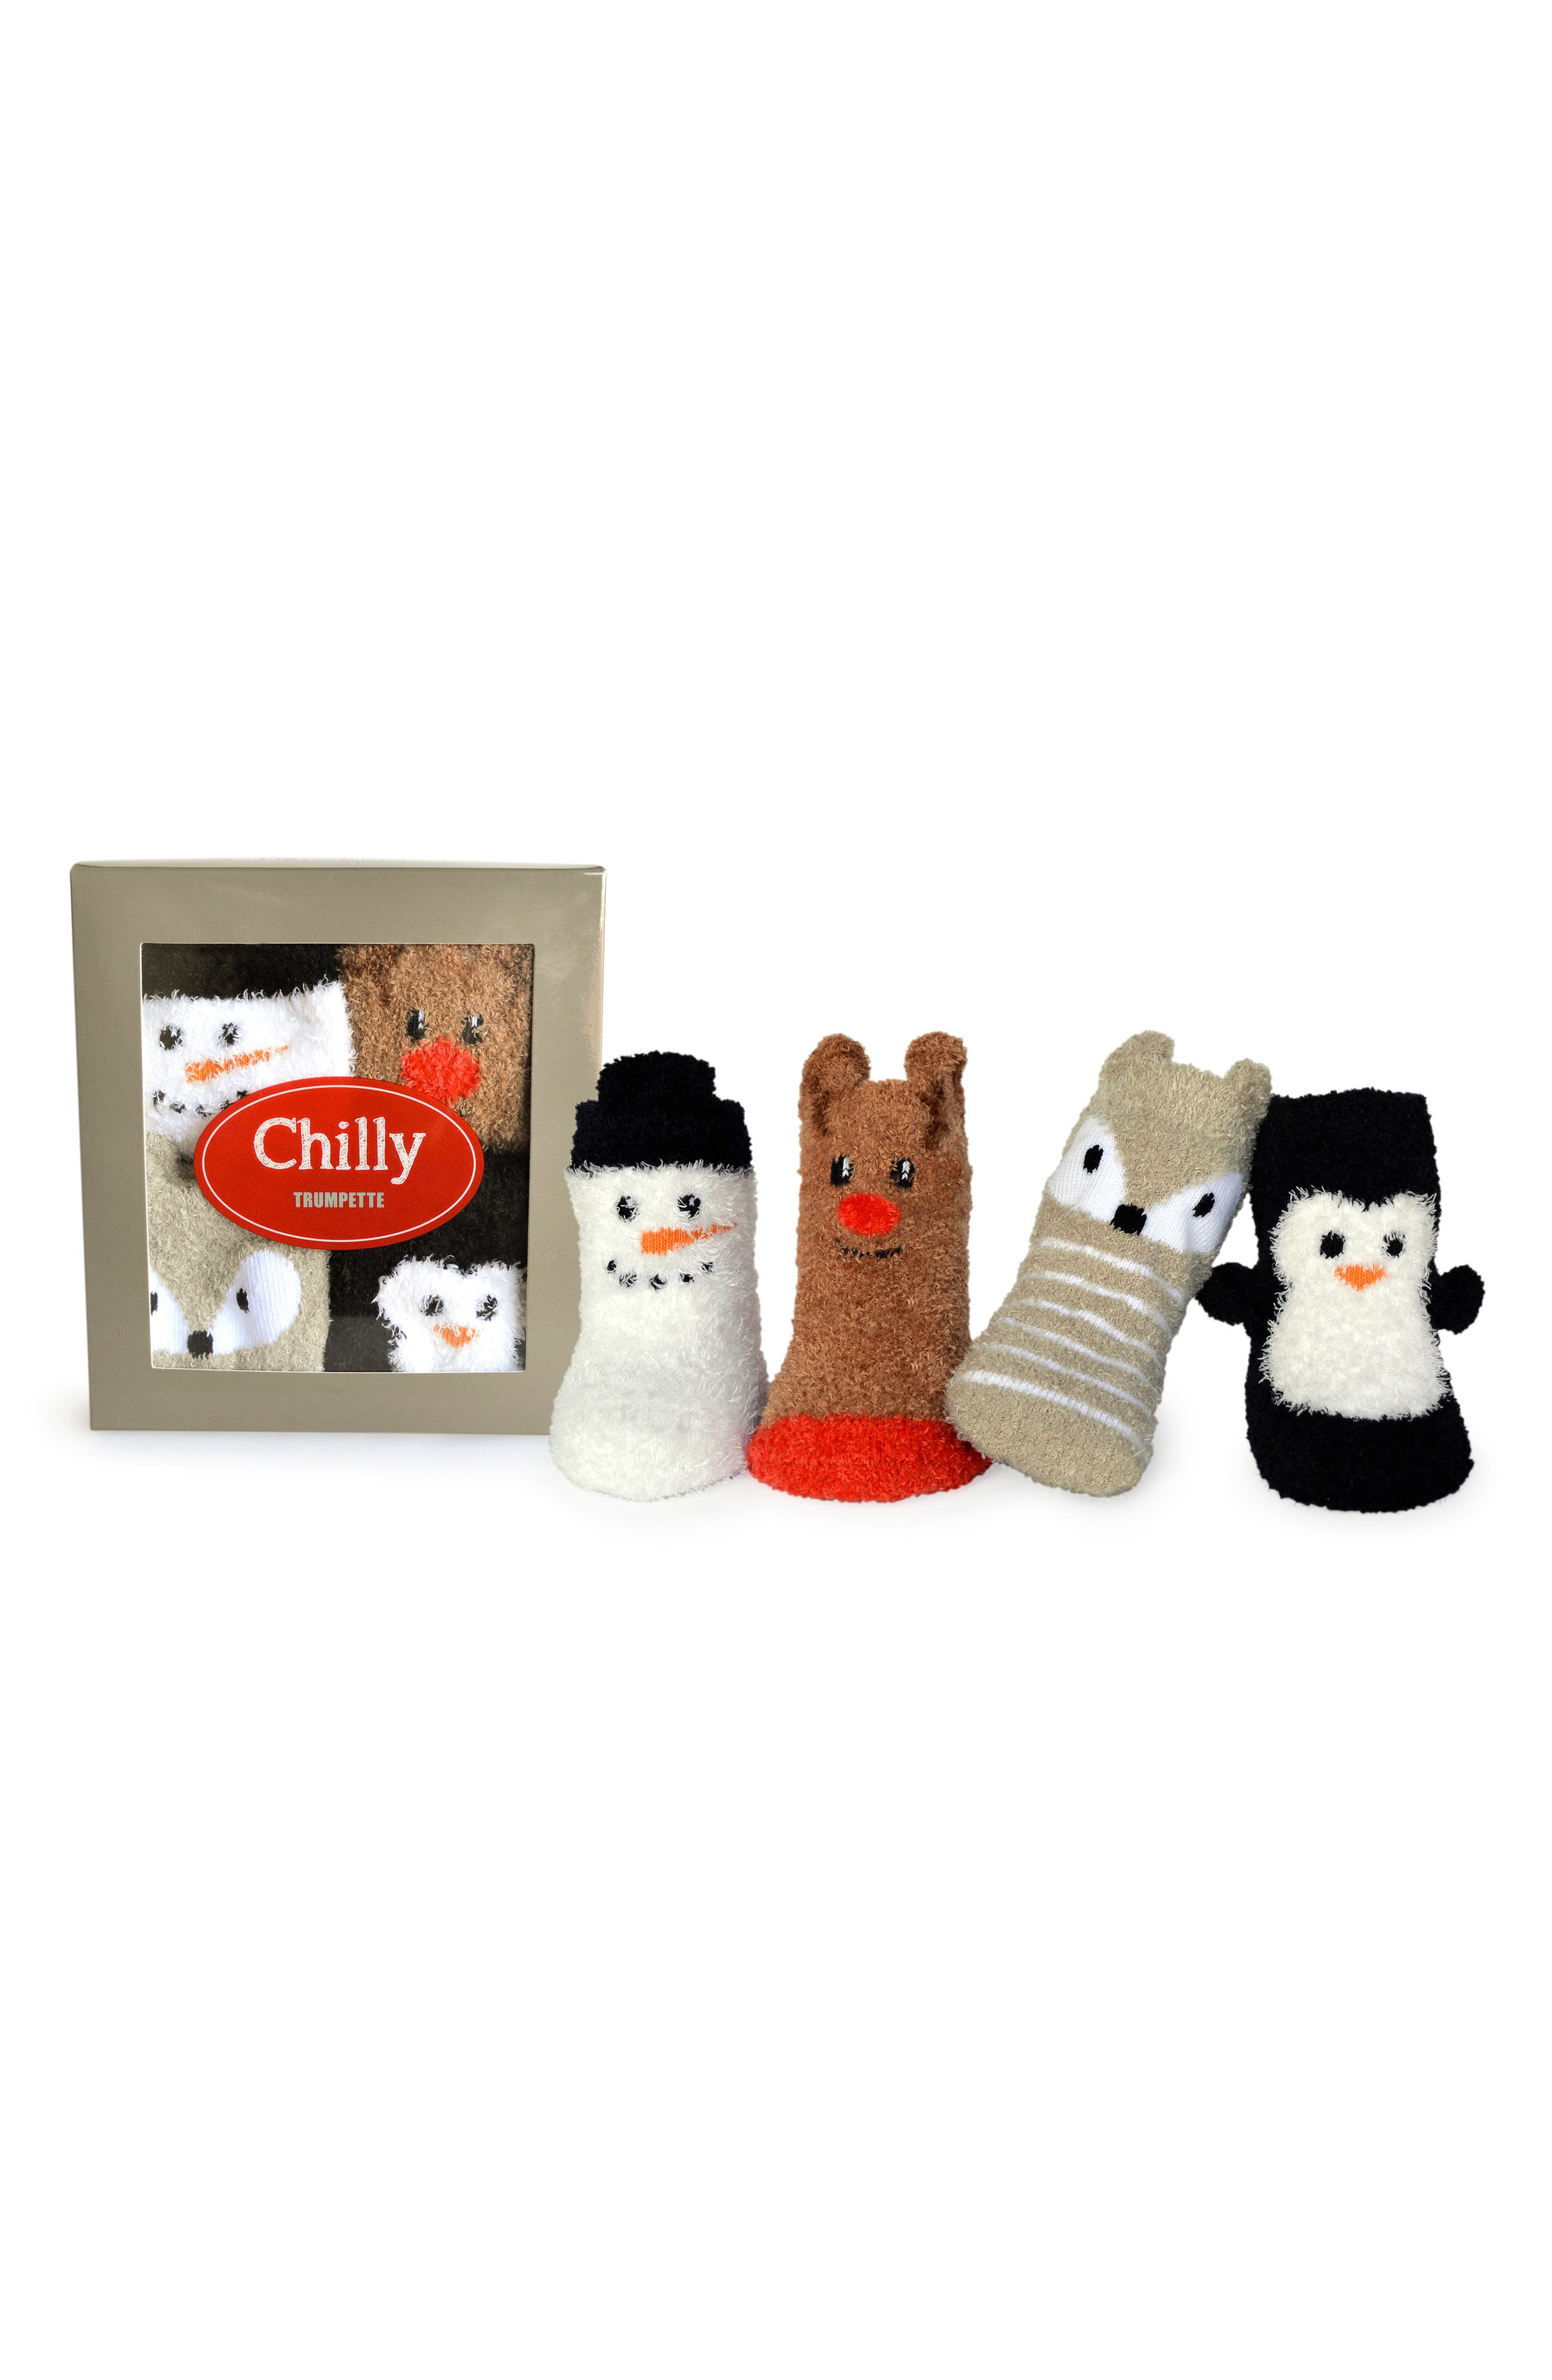 Chilly 4-Pack Socks,                             Main thumbnail 1, color,                             001